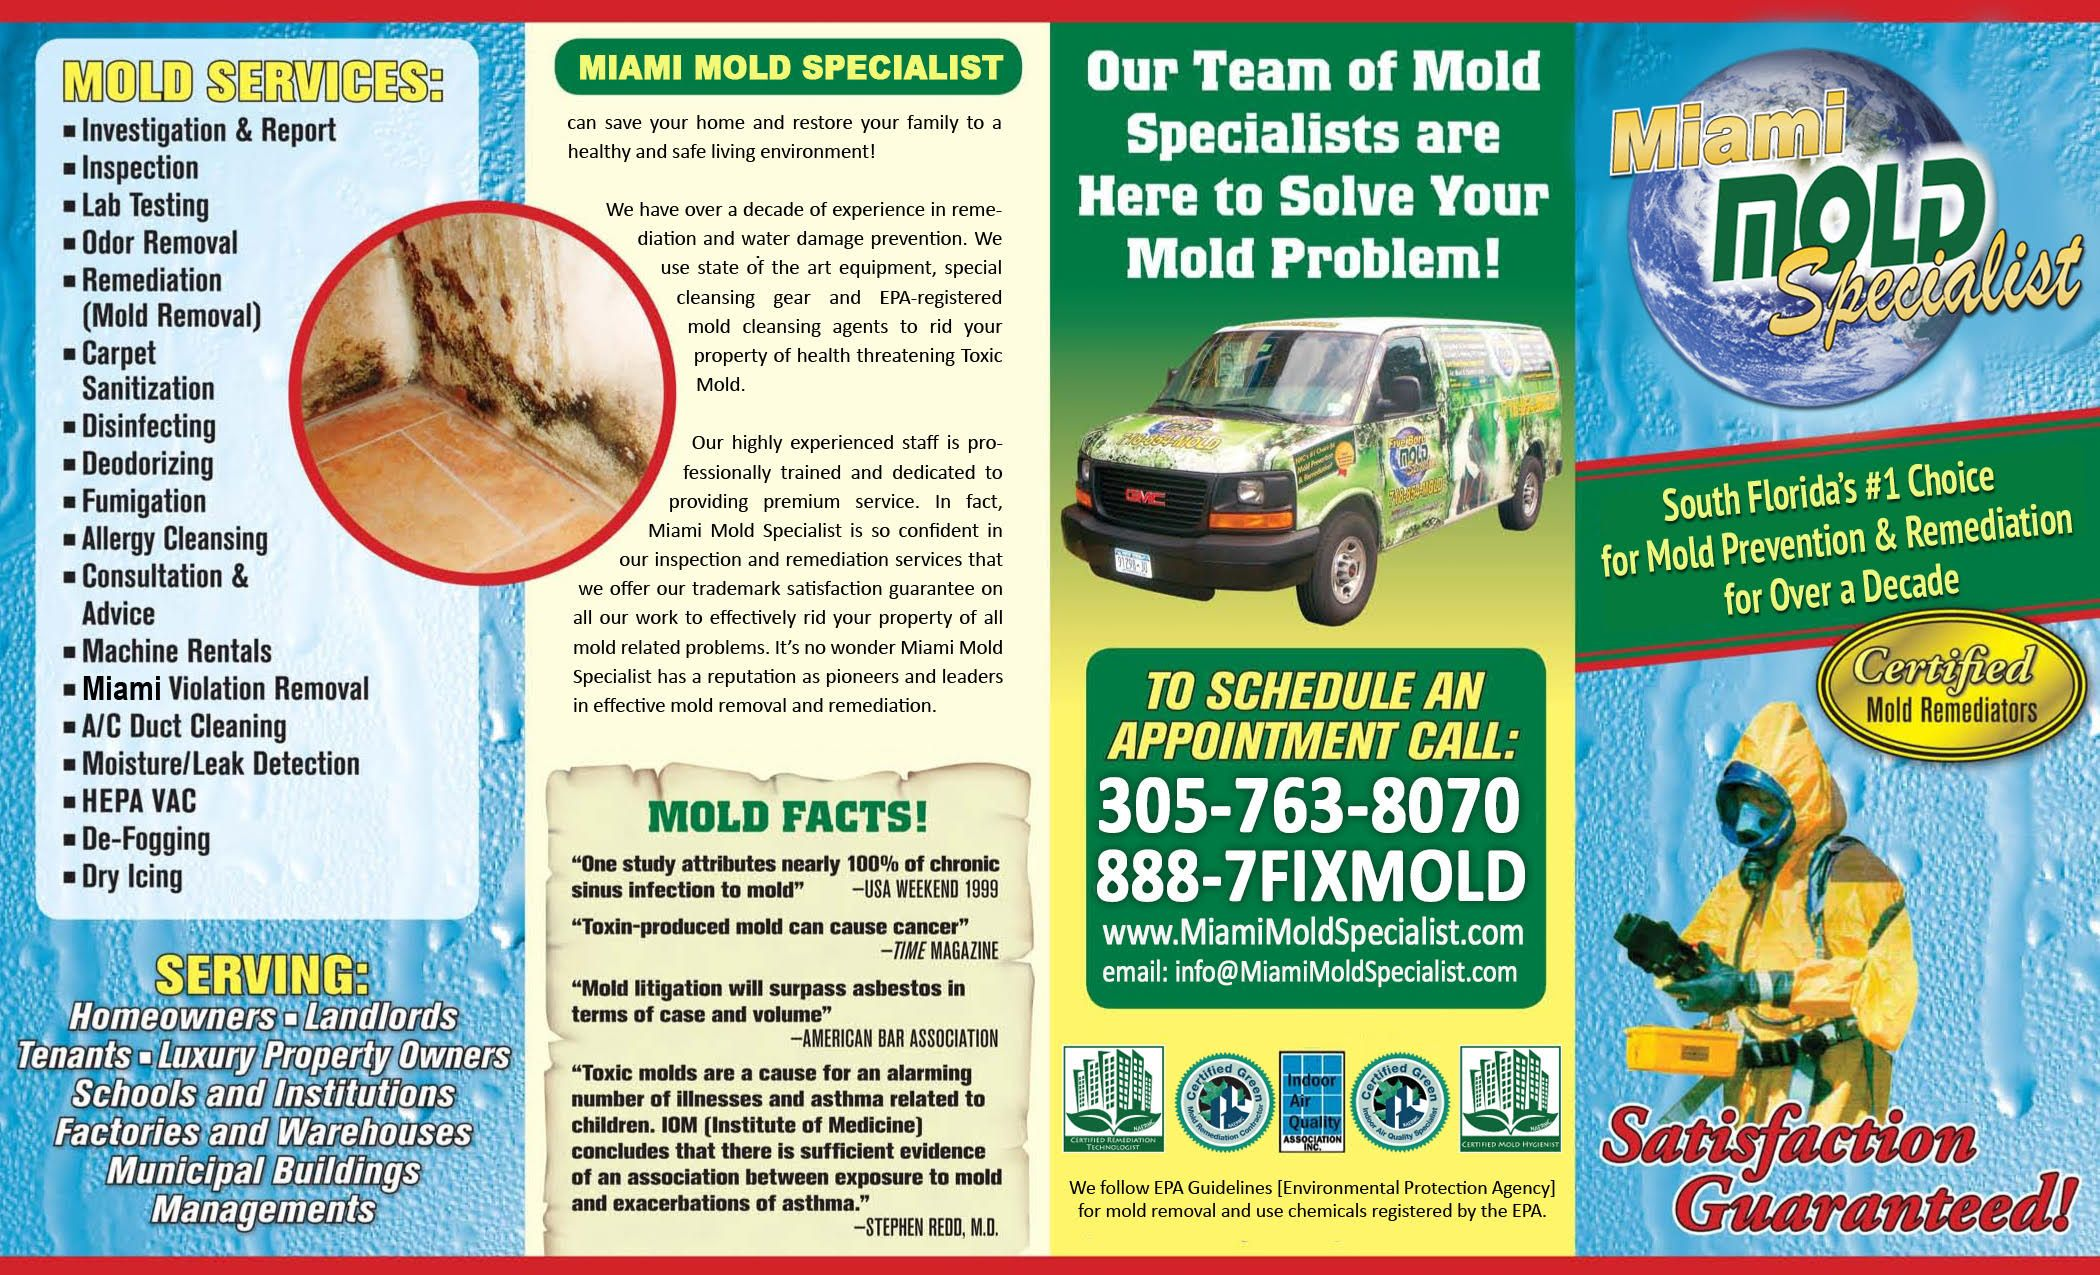 Specializing In High Tech Mold Inspections Conflict Free Mold Testing And Rapid Mold Removal Services Offeri Mold Remediation Mold Inspection Mold Remover